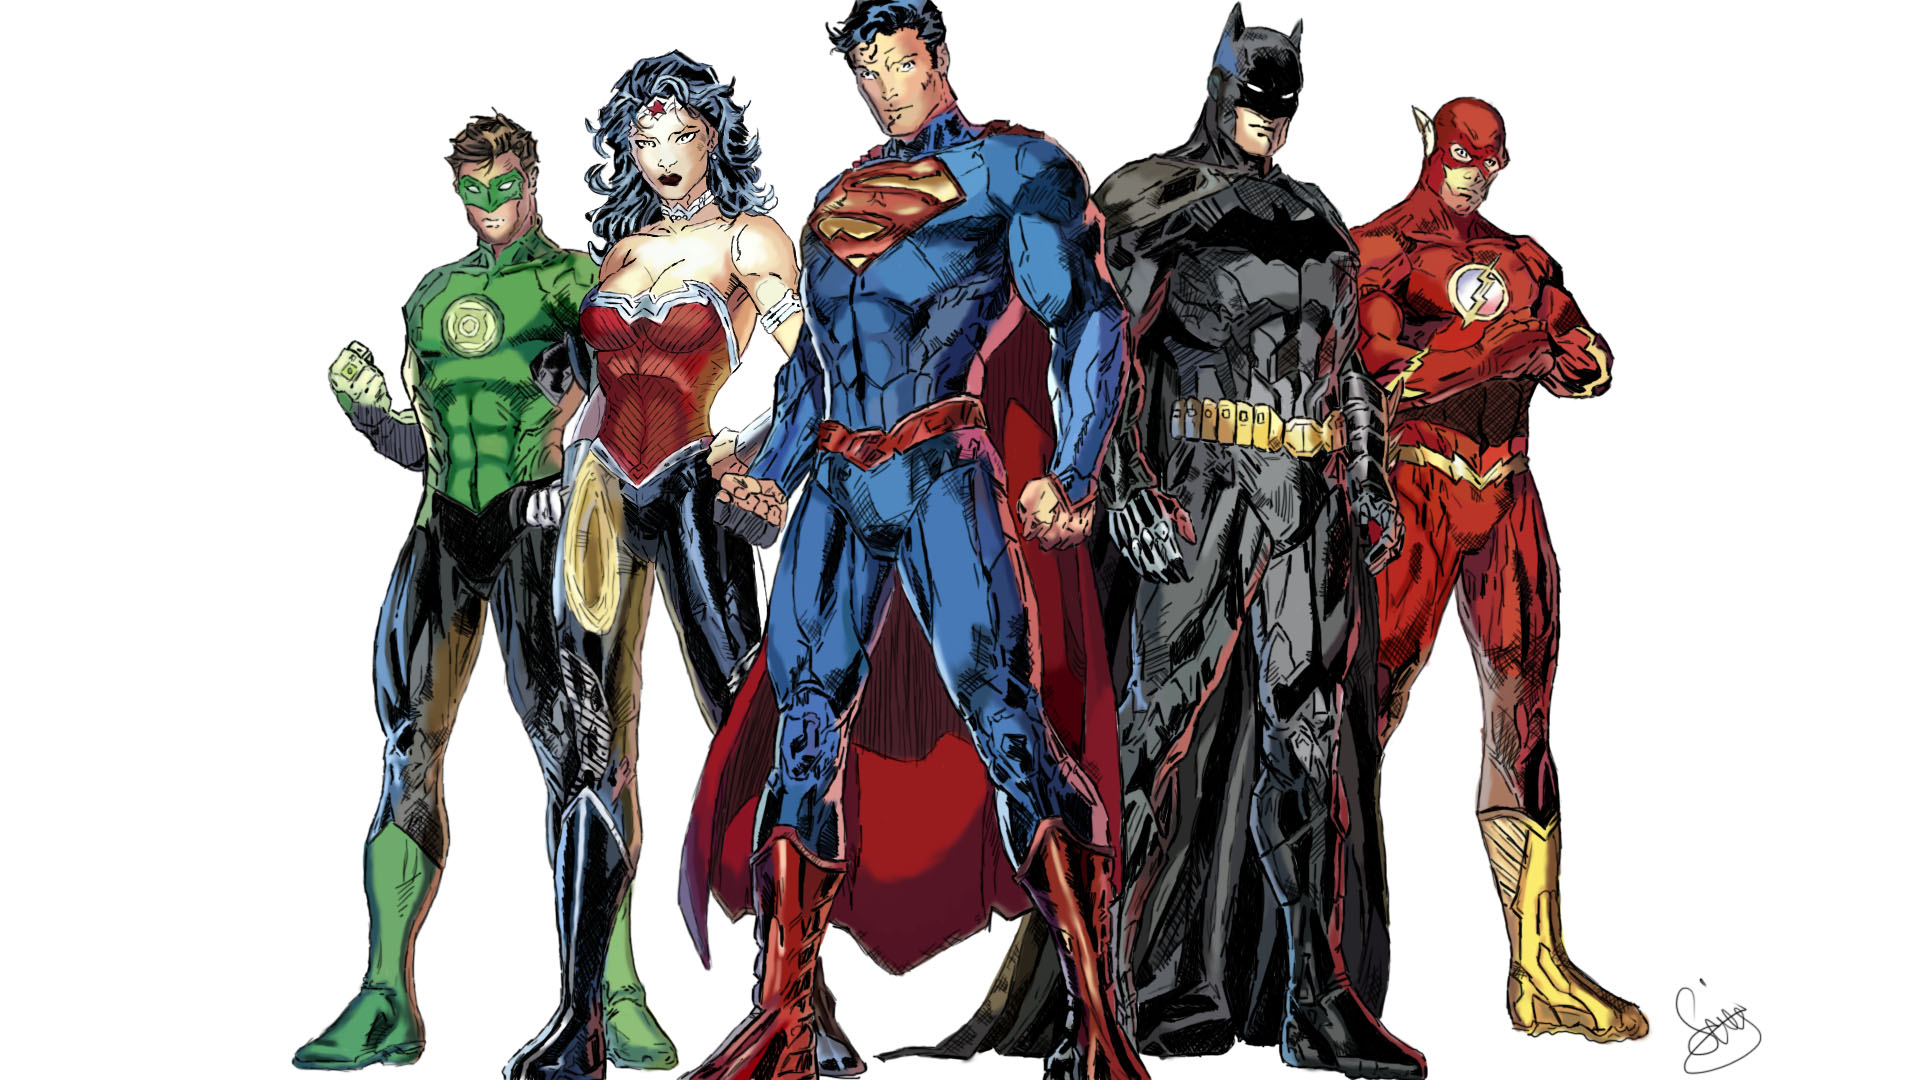 justice_league_of_america__2_by_alison_charlie-d4n0yar